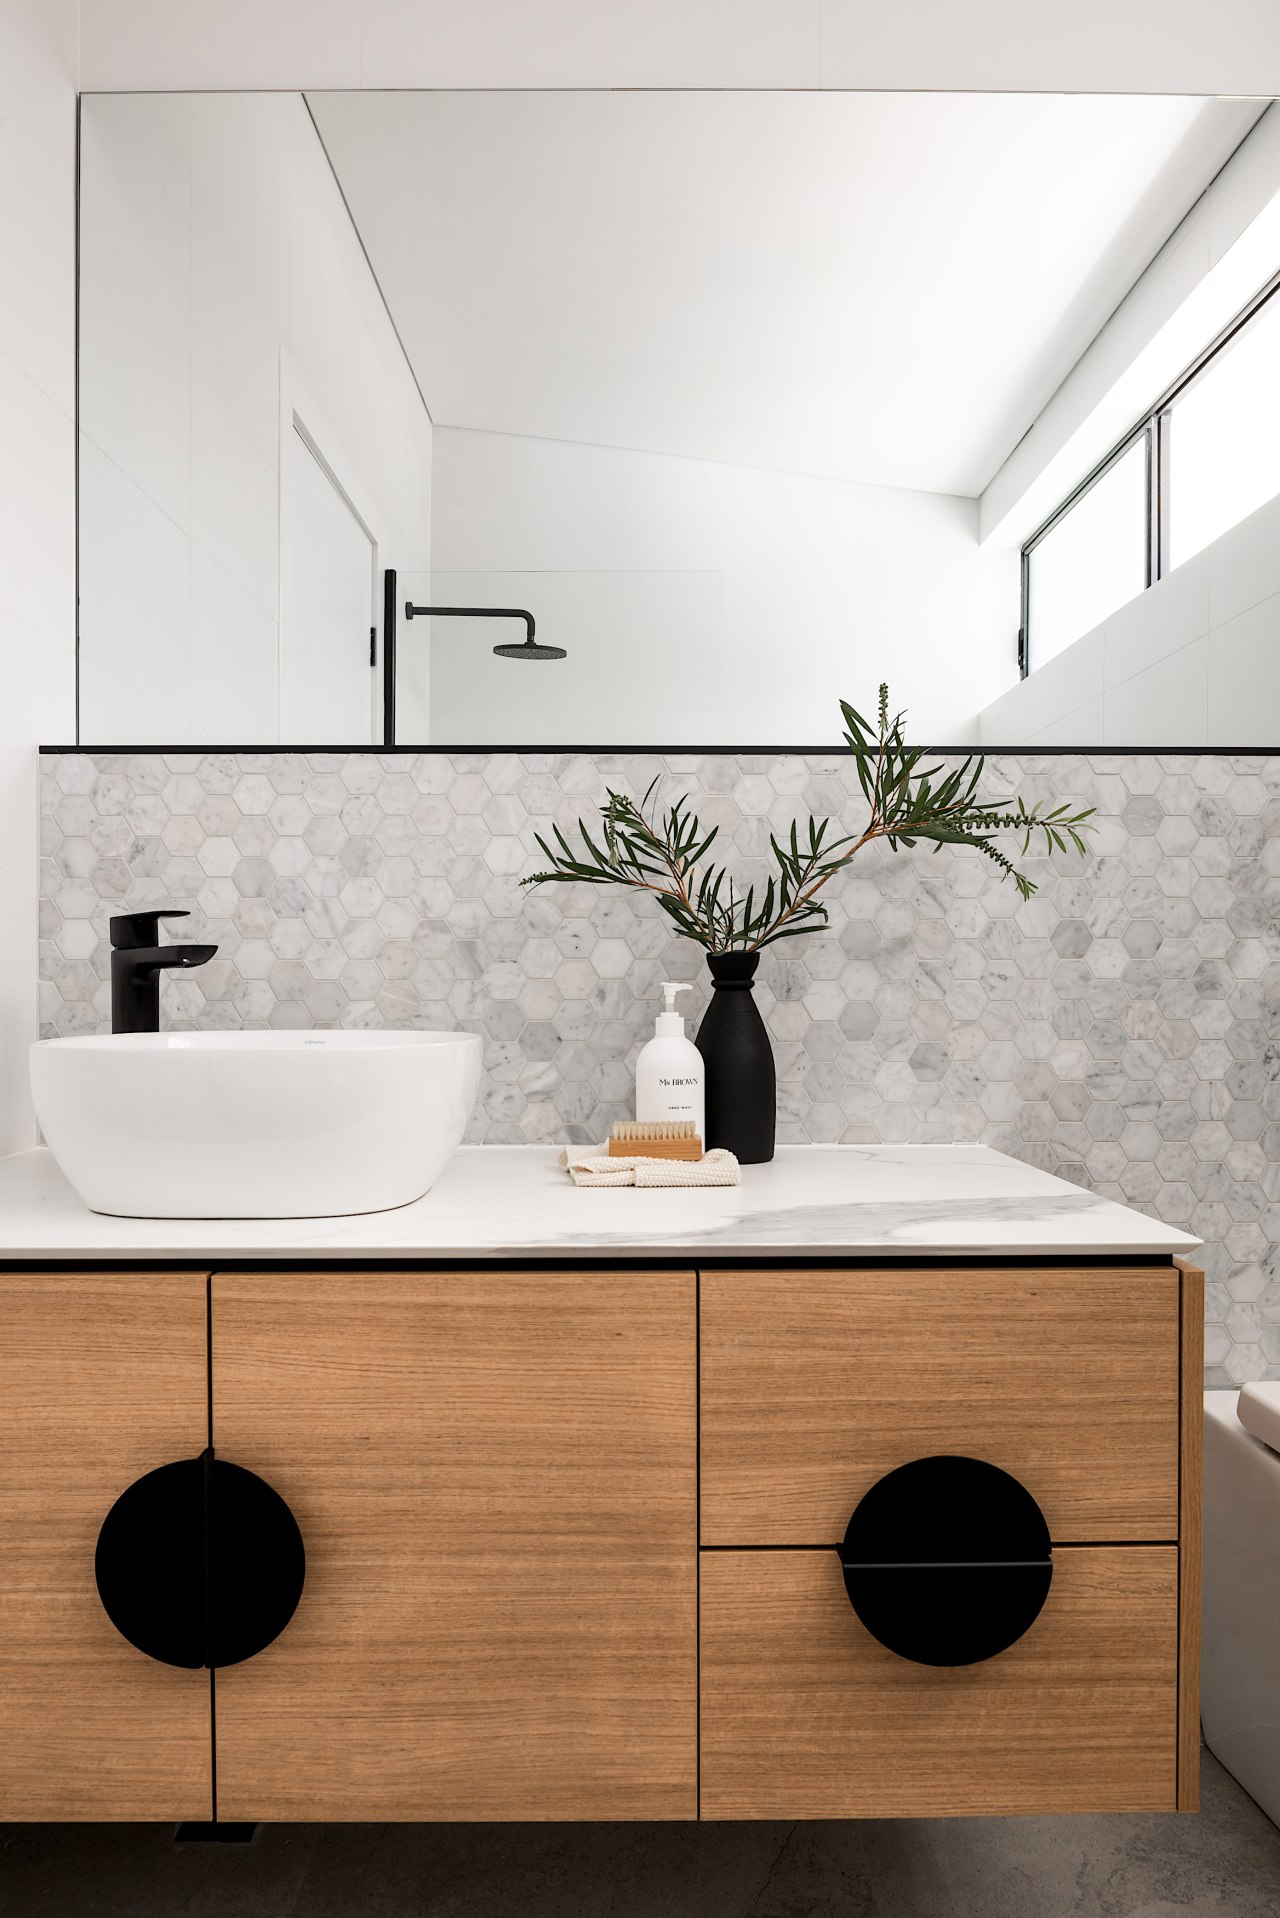 A wood vanity adds warmth to the minimalist